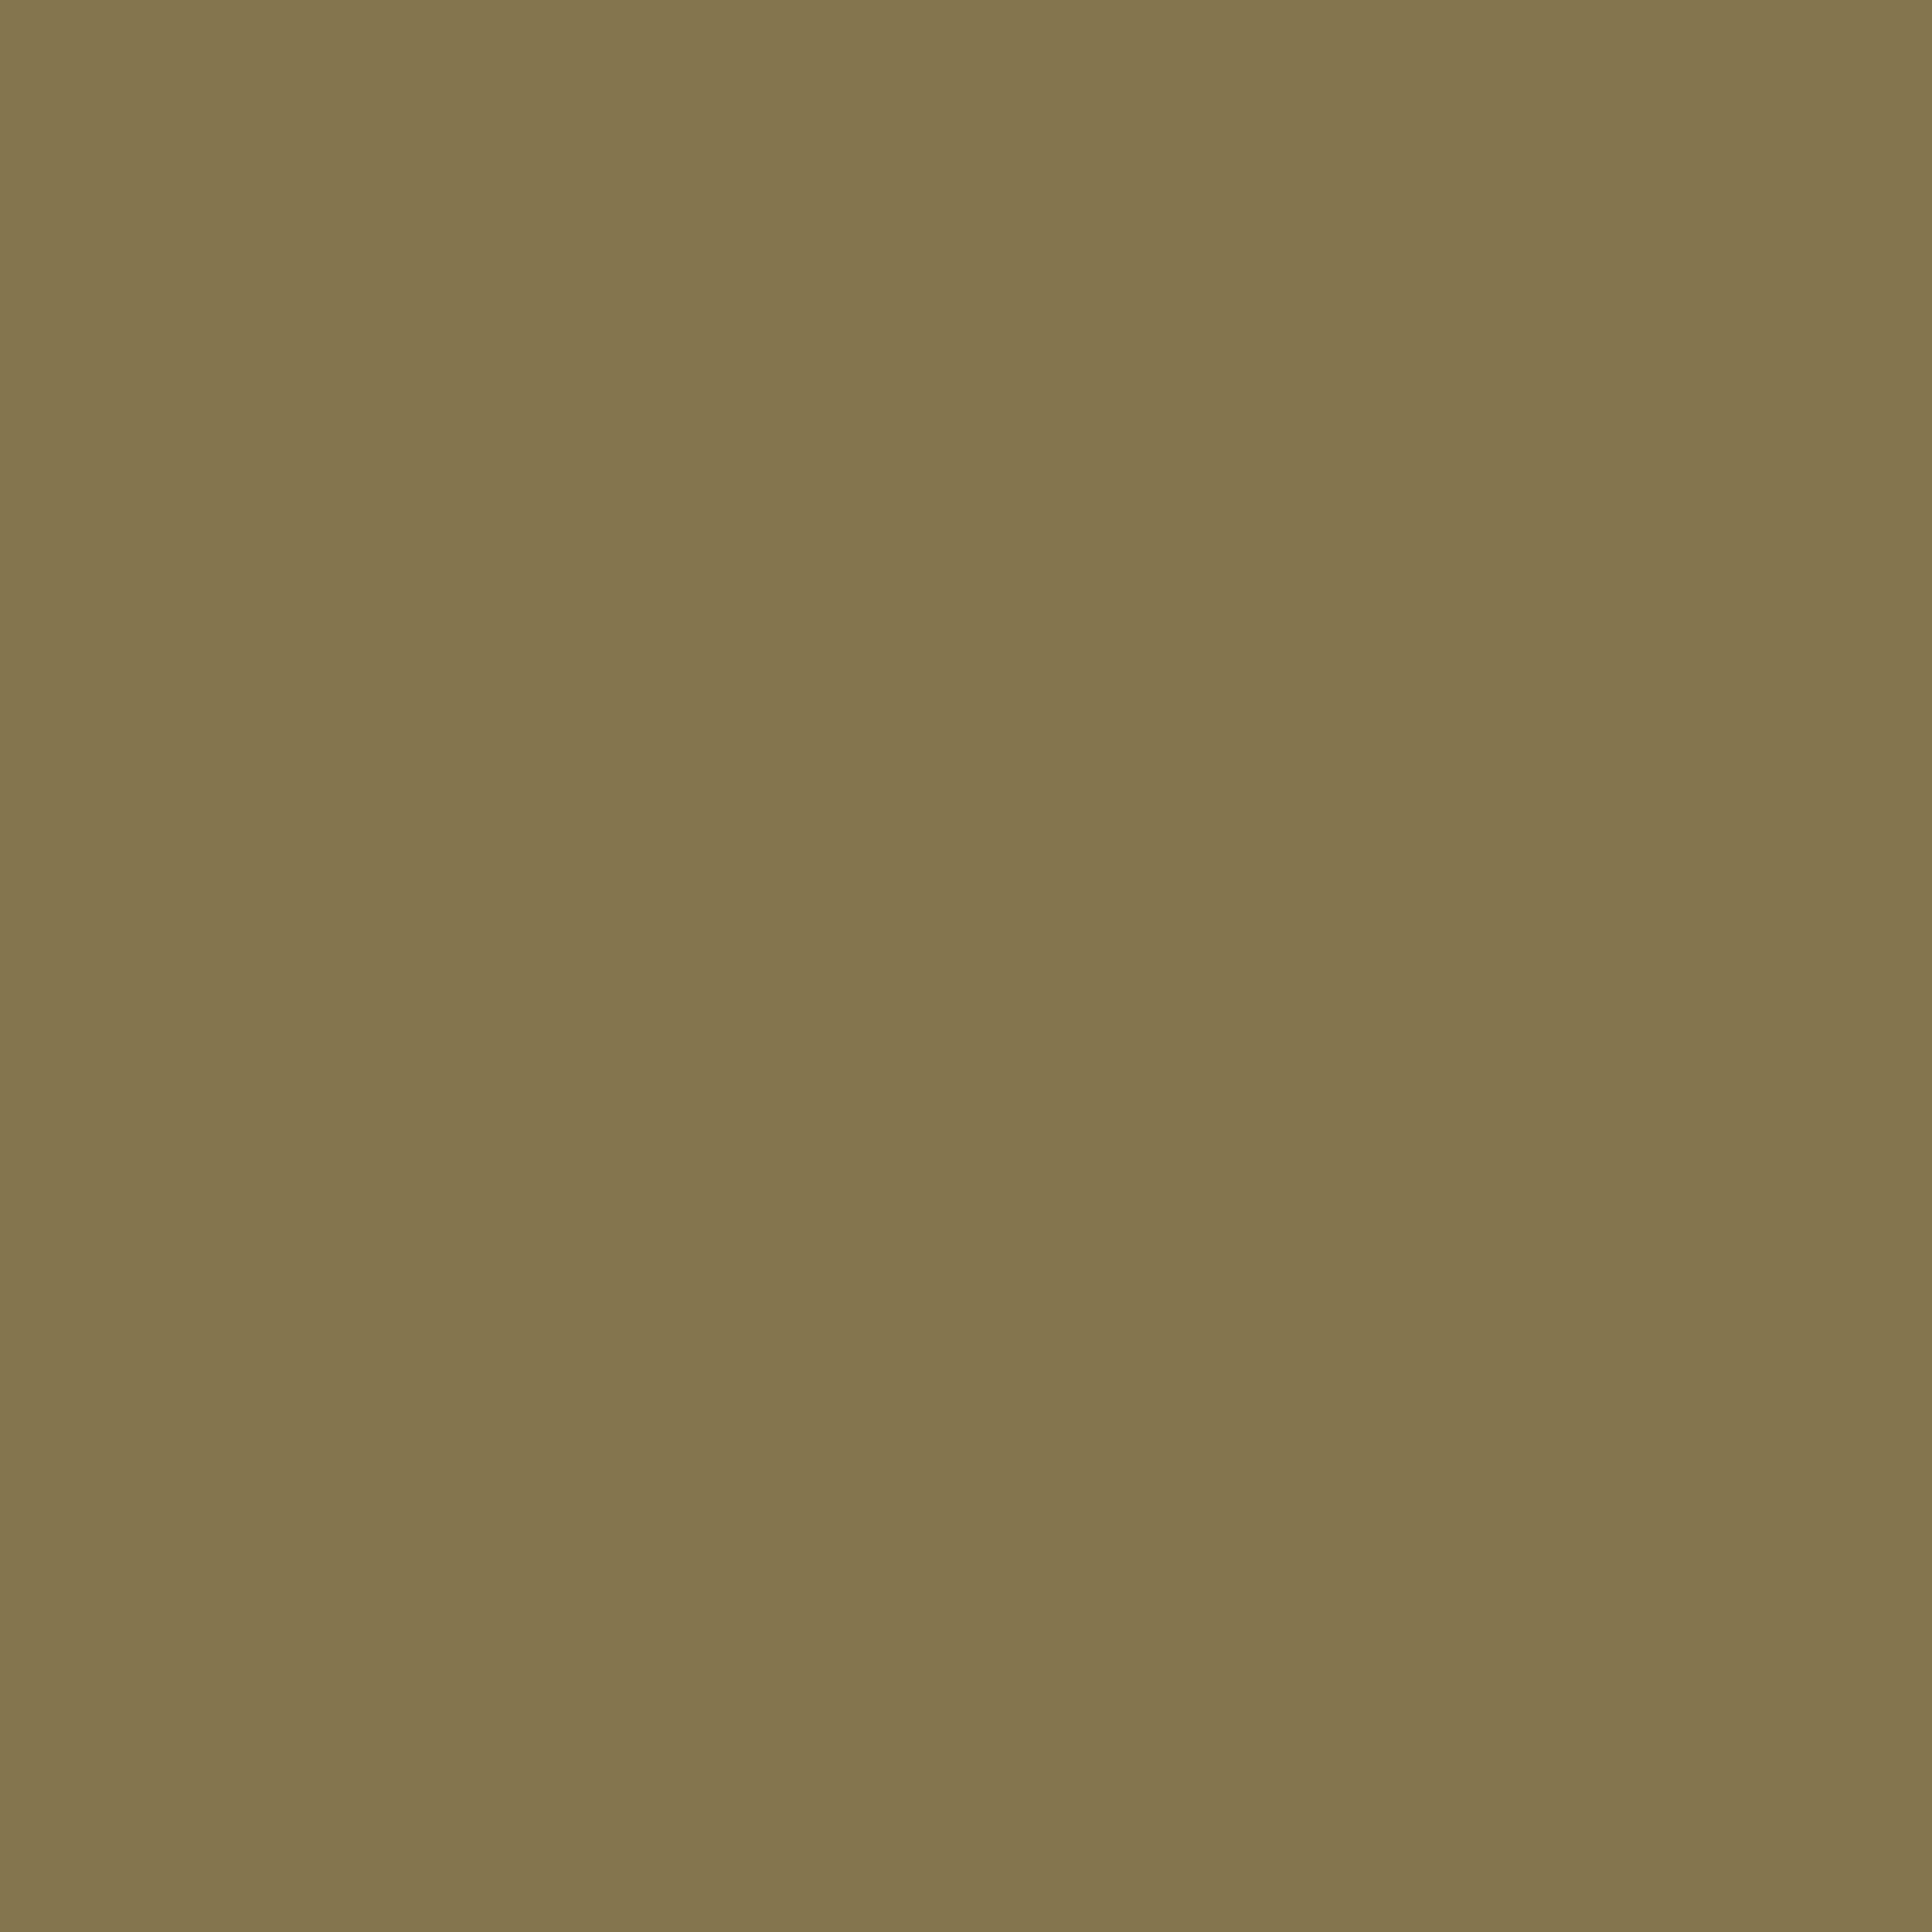 2048x2048 Gold Fusion Solid Color Background